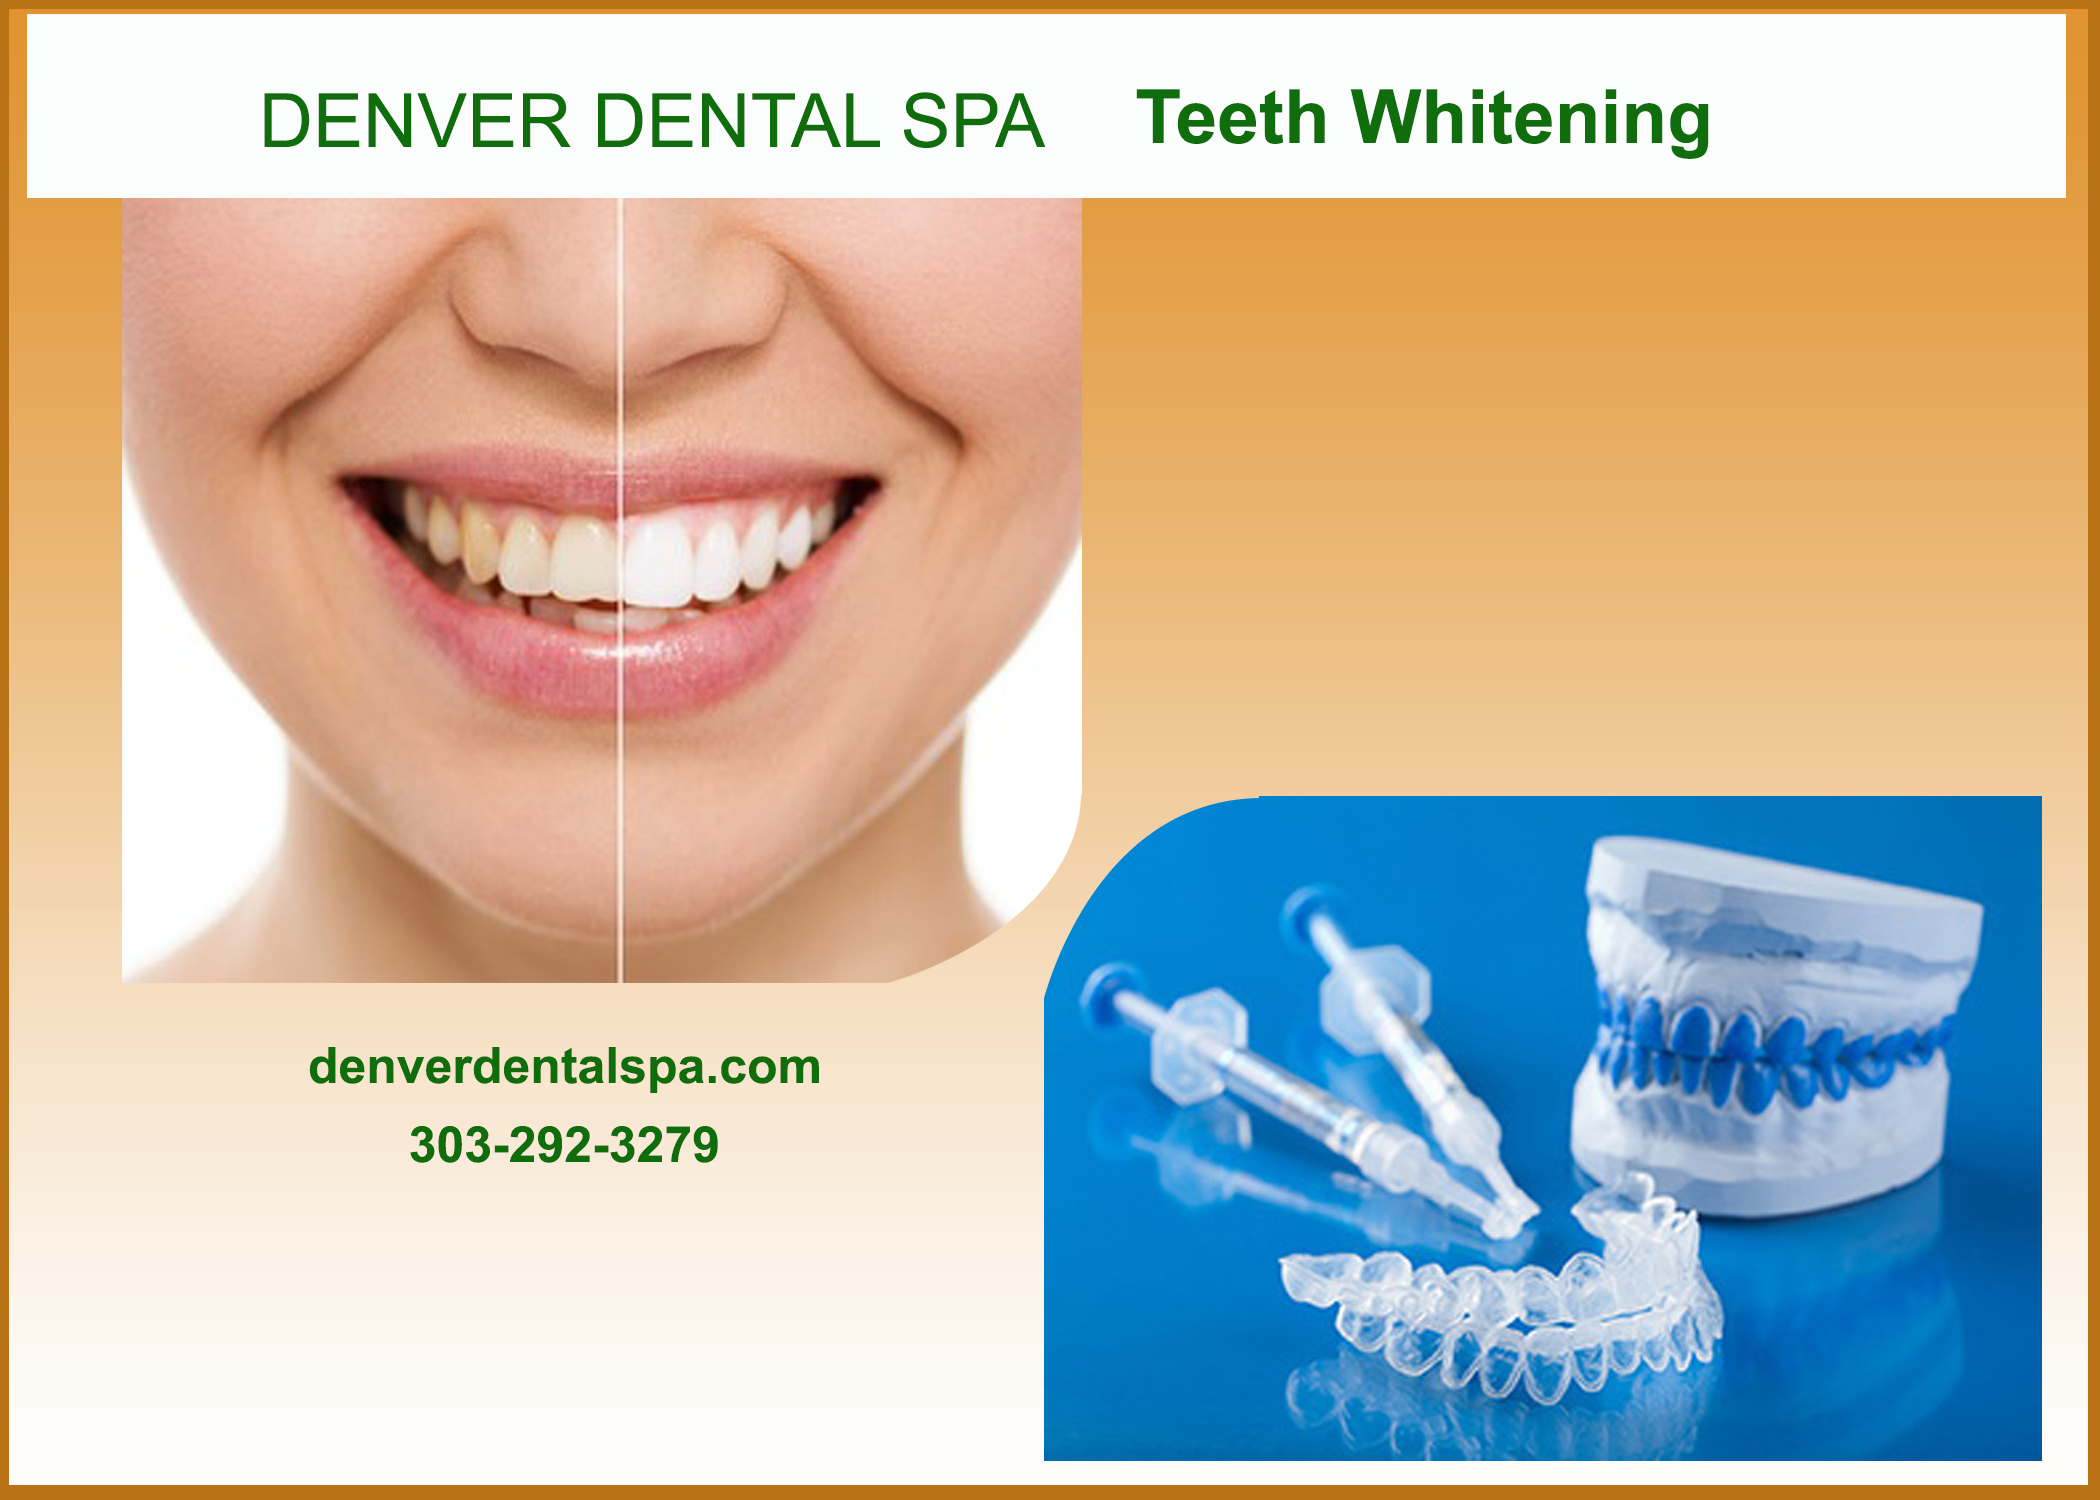 Denver Dental Spa Provides The Services Teeth Whitening Root